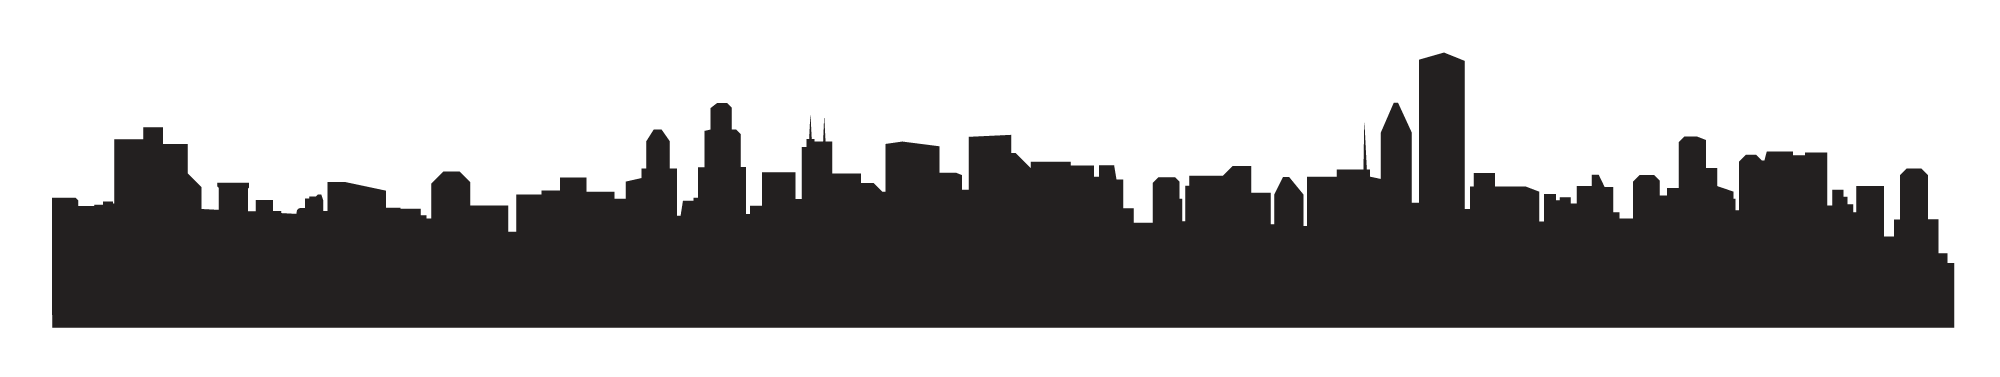 las vegas skyline silhouette vector at getdrawings com free for rh getdrawings com city victorville city victoria